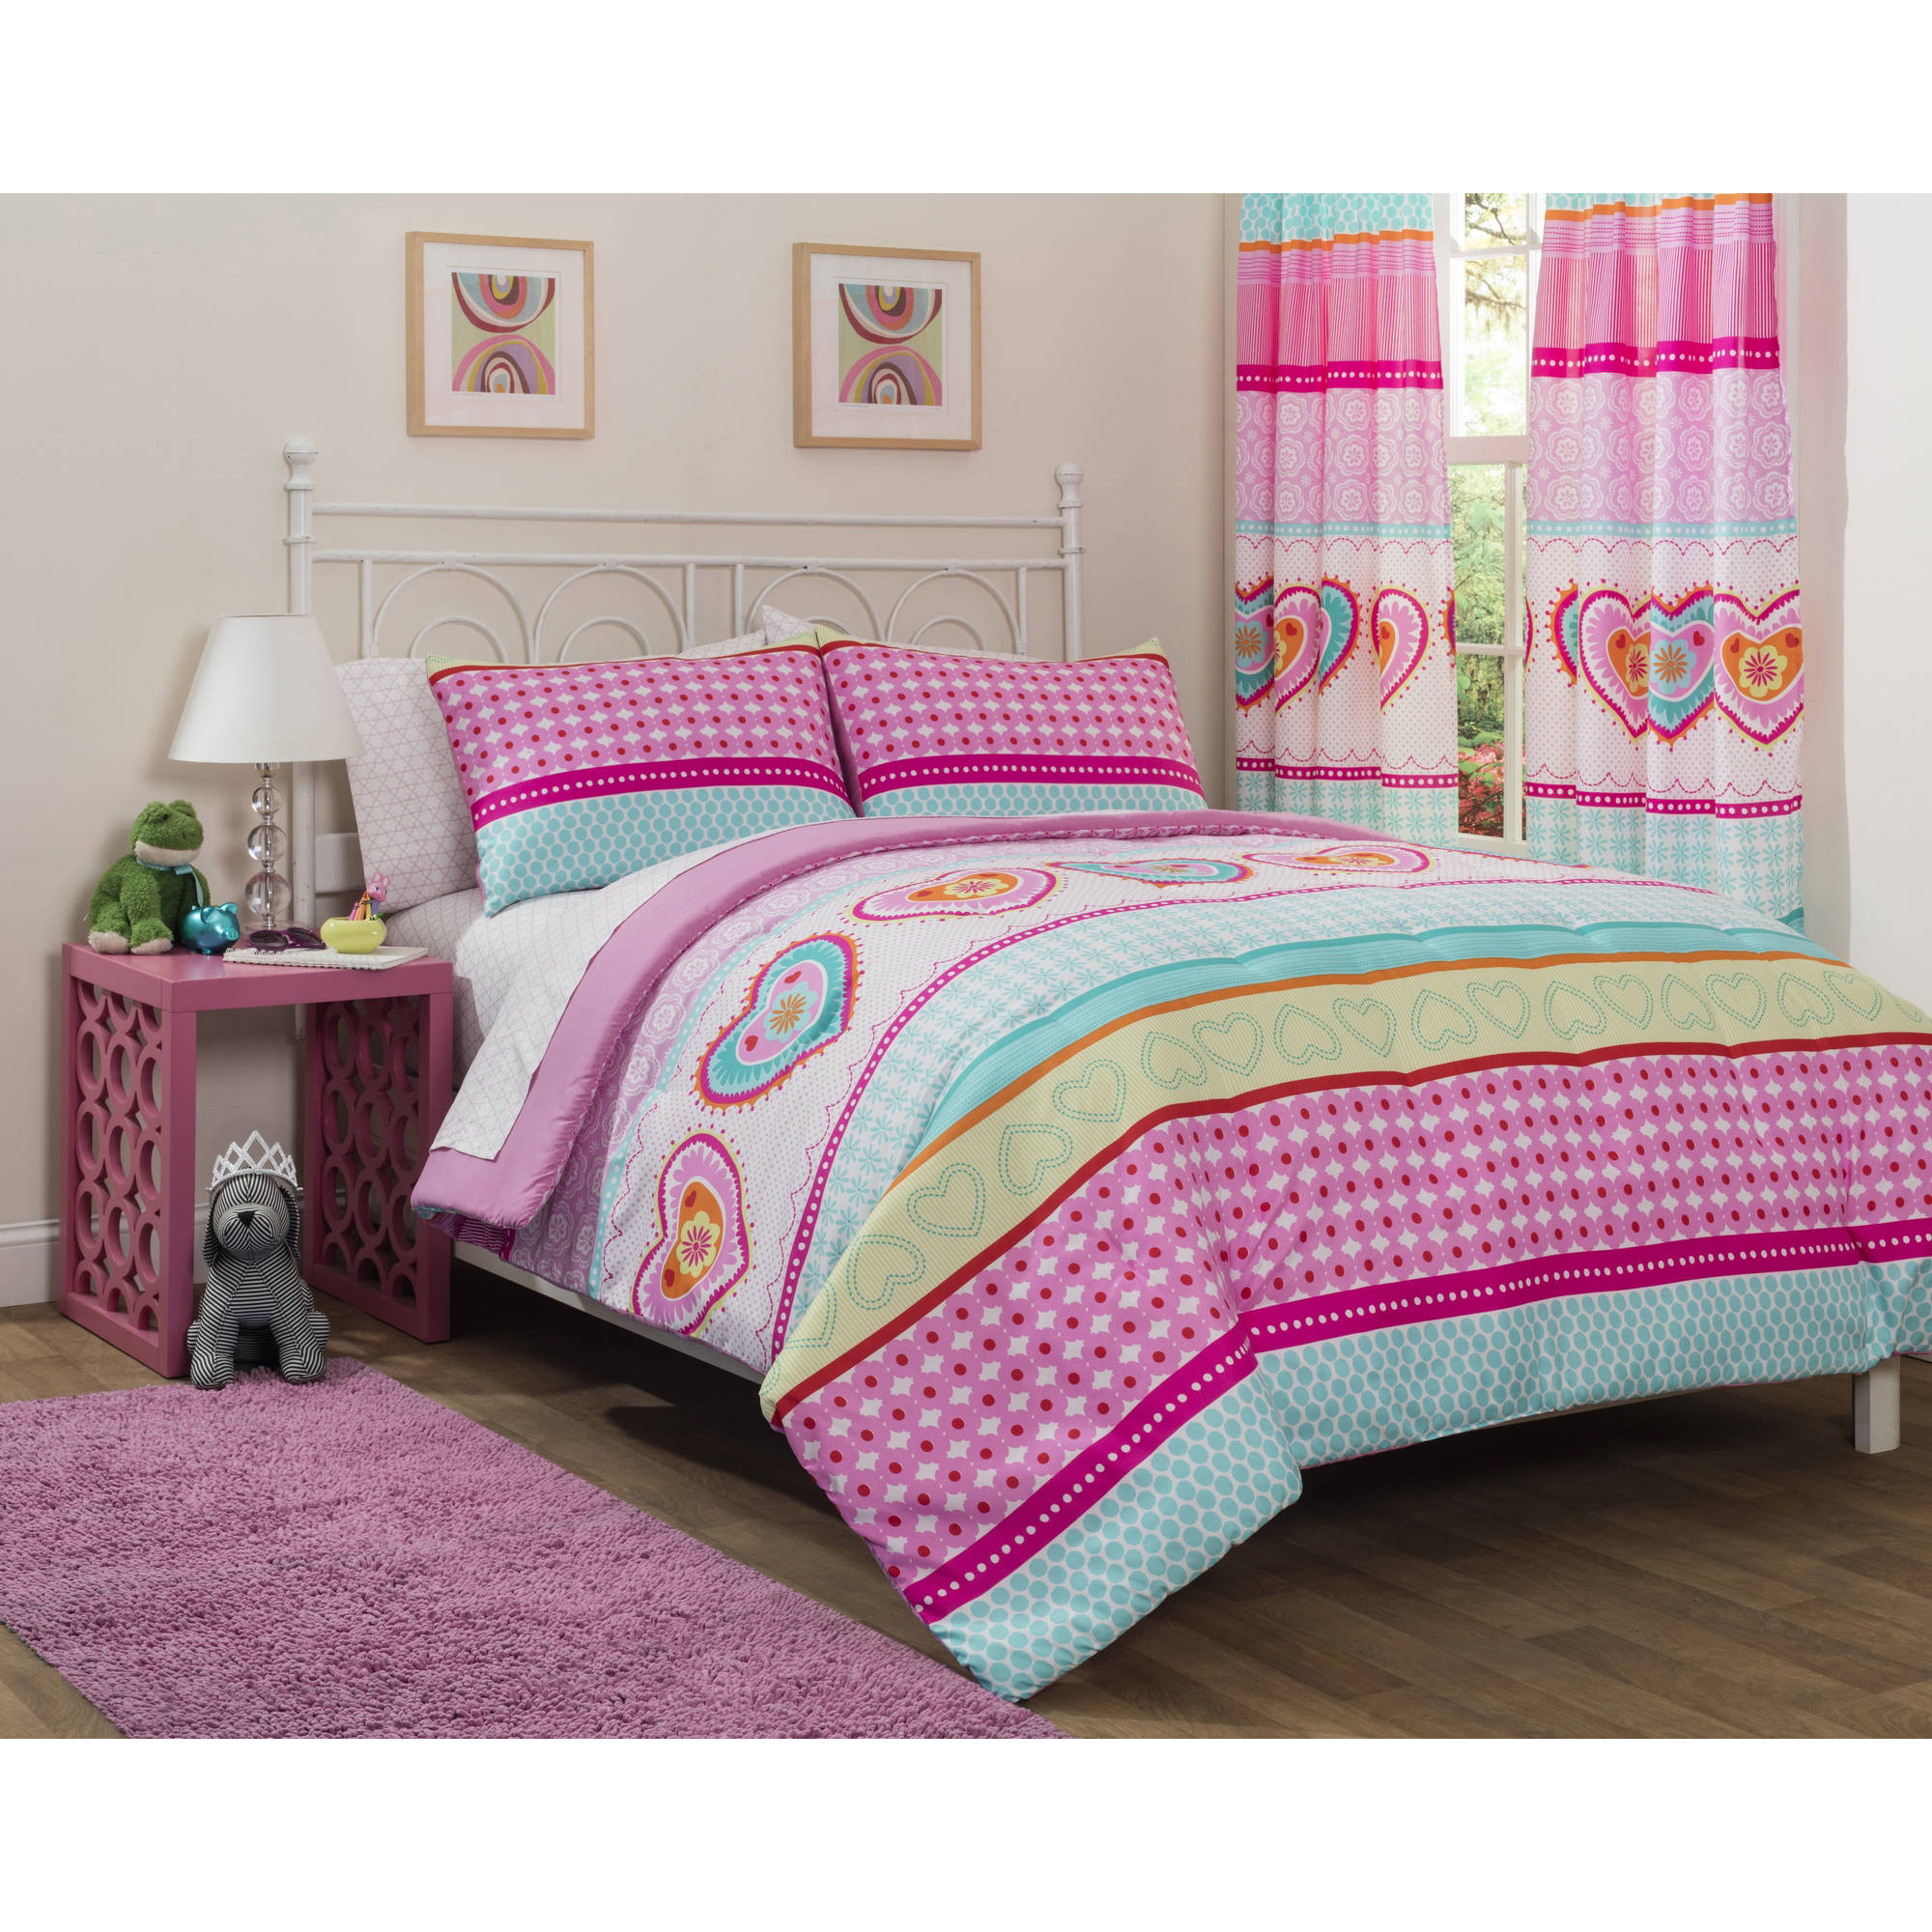 Mainstays Kids Hearts and Stripes Patchwork Bed in a Bag Bedding Set